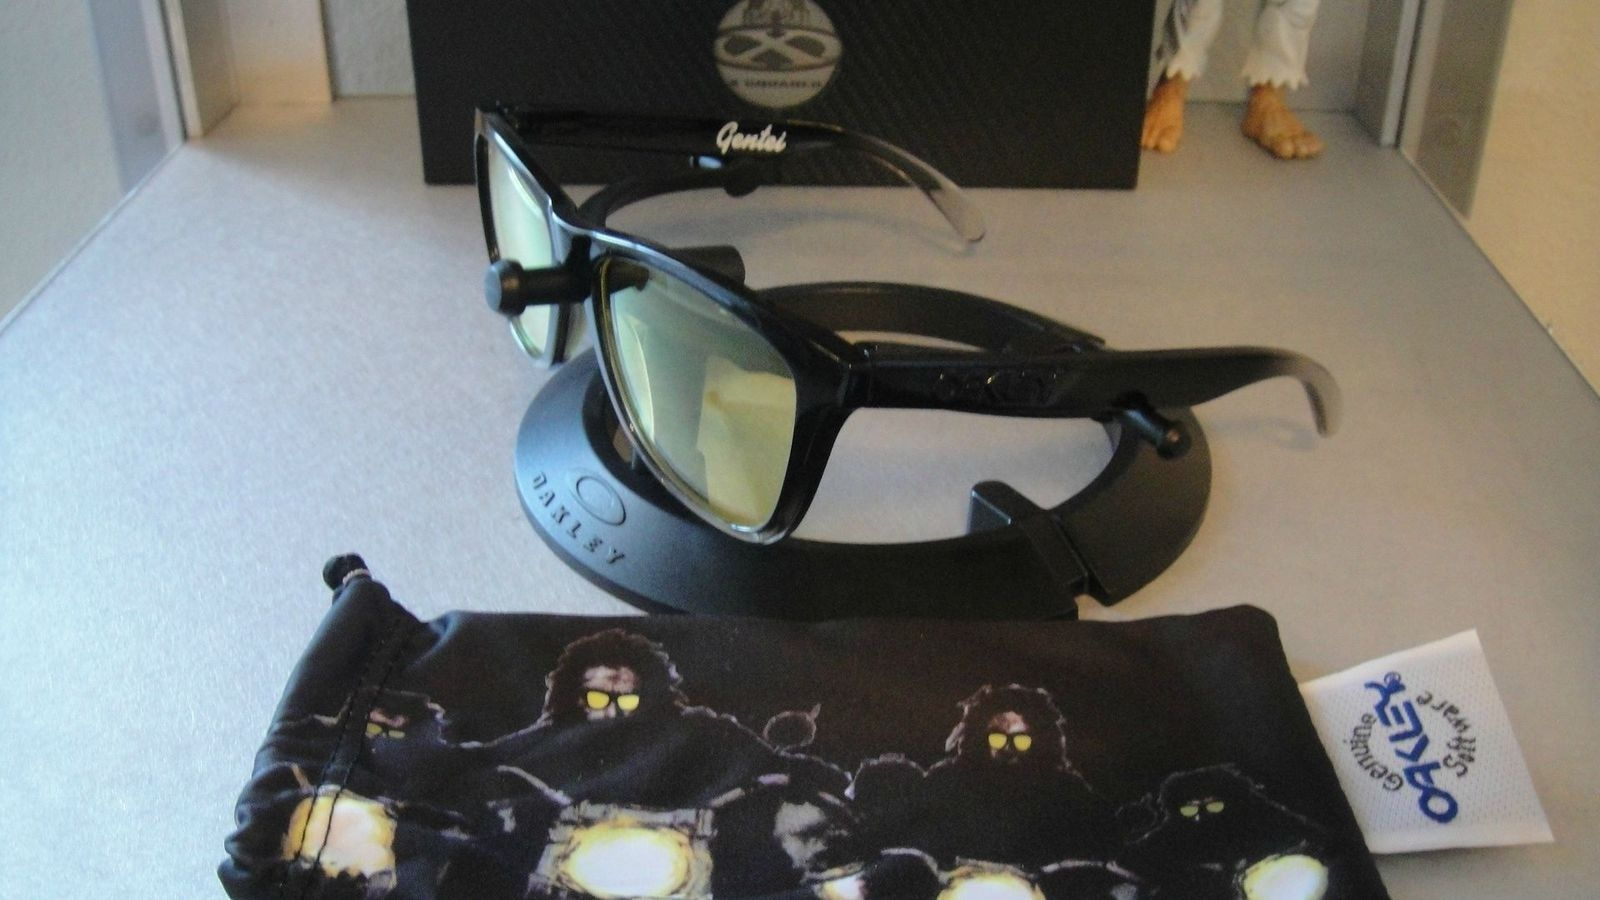 Thanks Oakleynerd! - osbB0.jpg